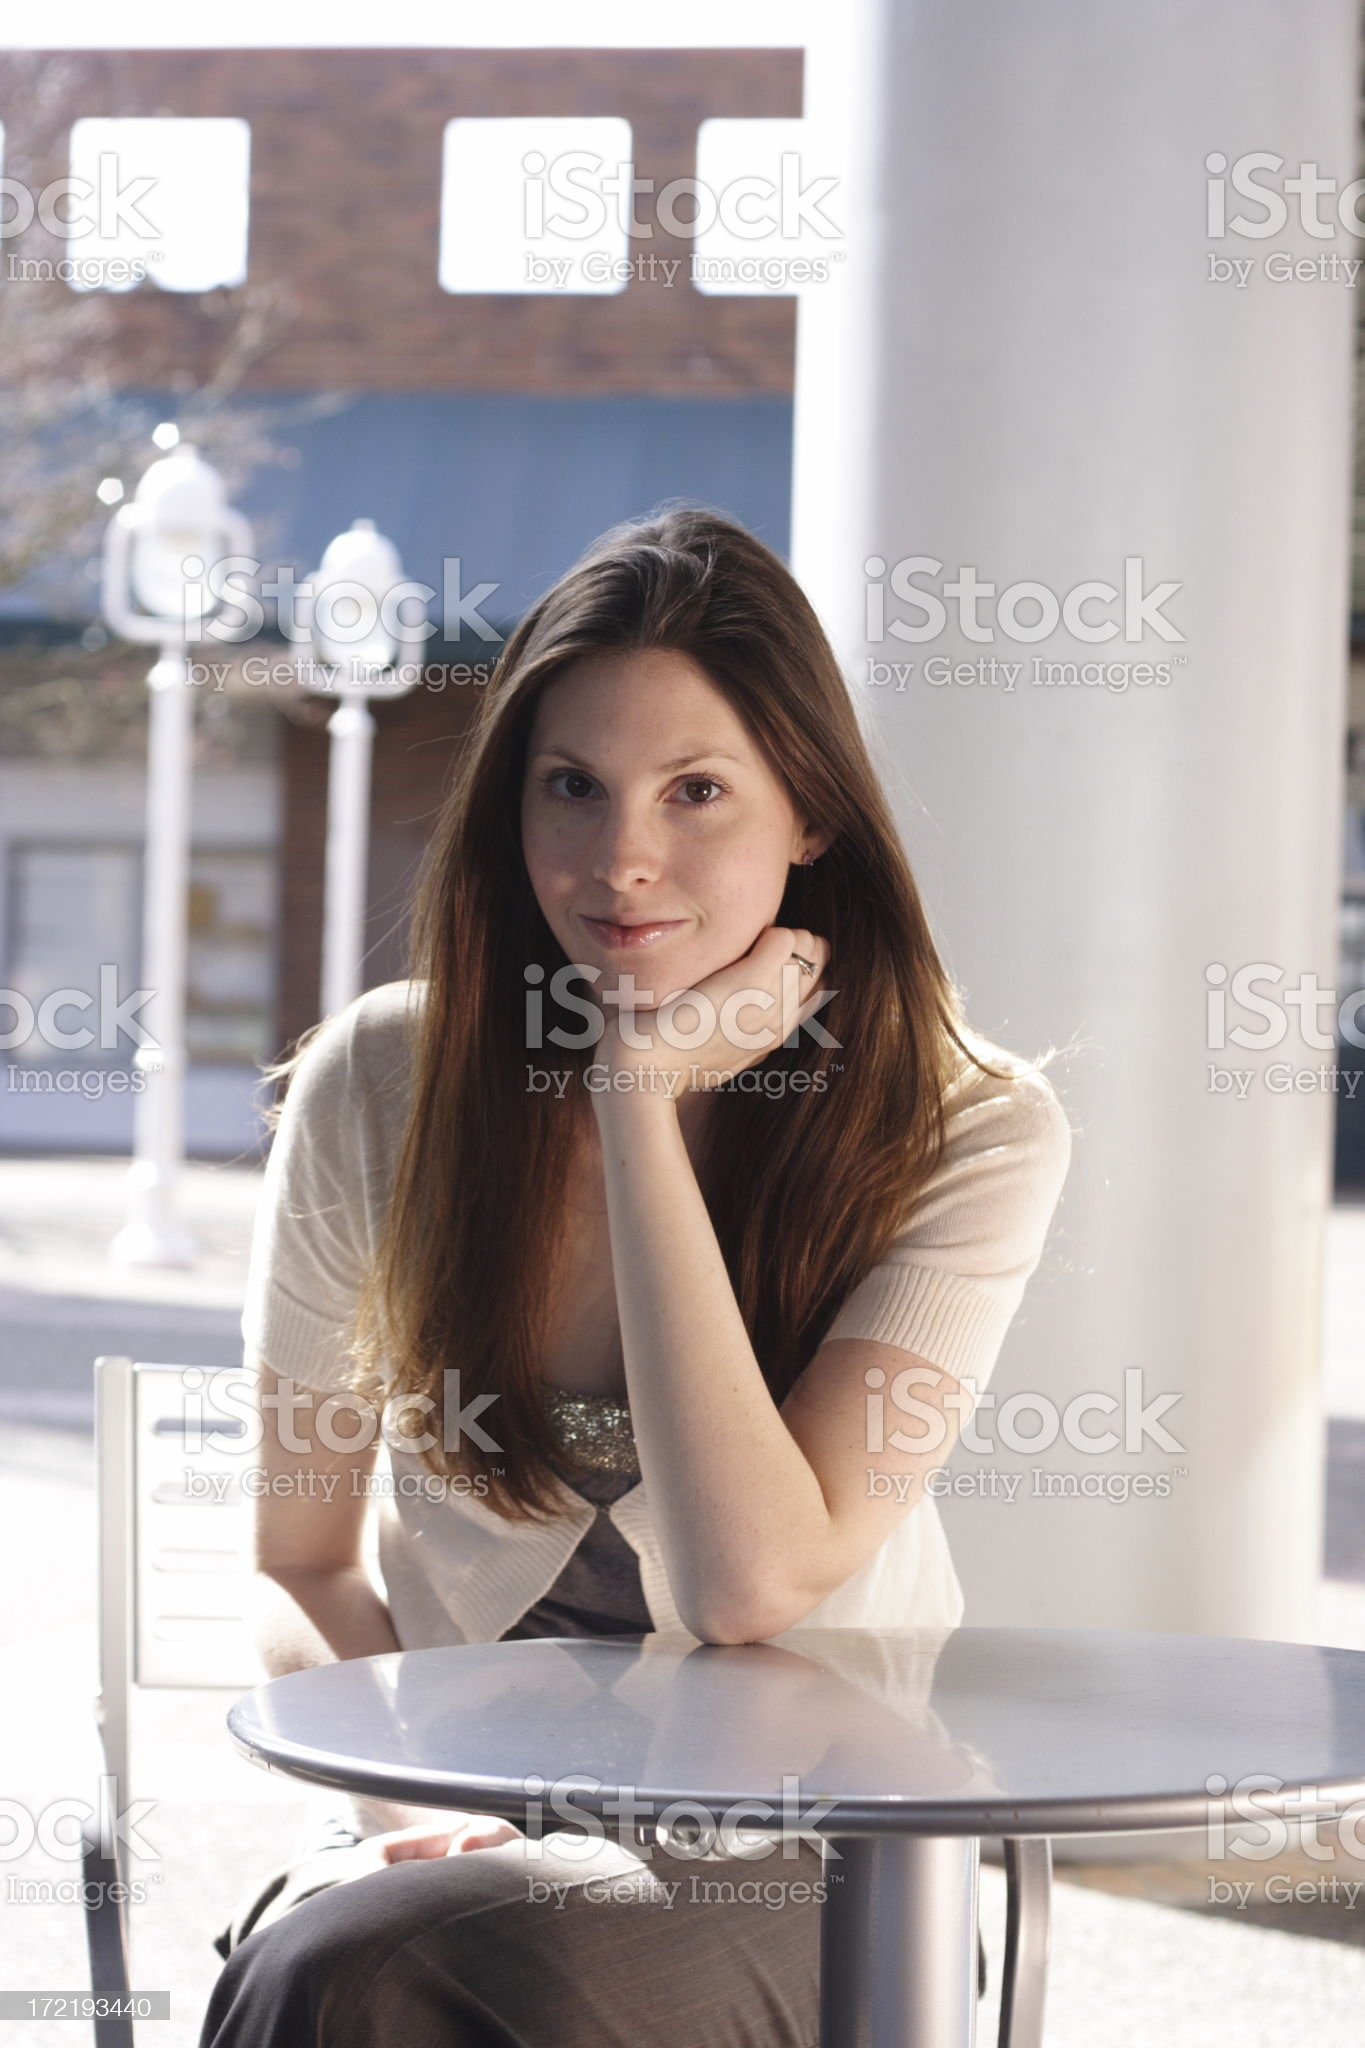 beautiful woman sitting at a cafe table royalty-free stock photo